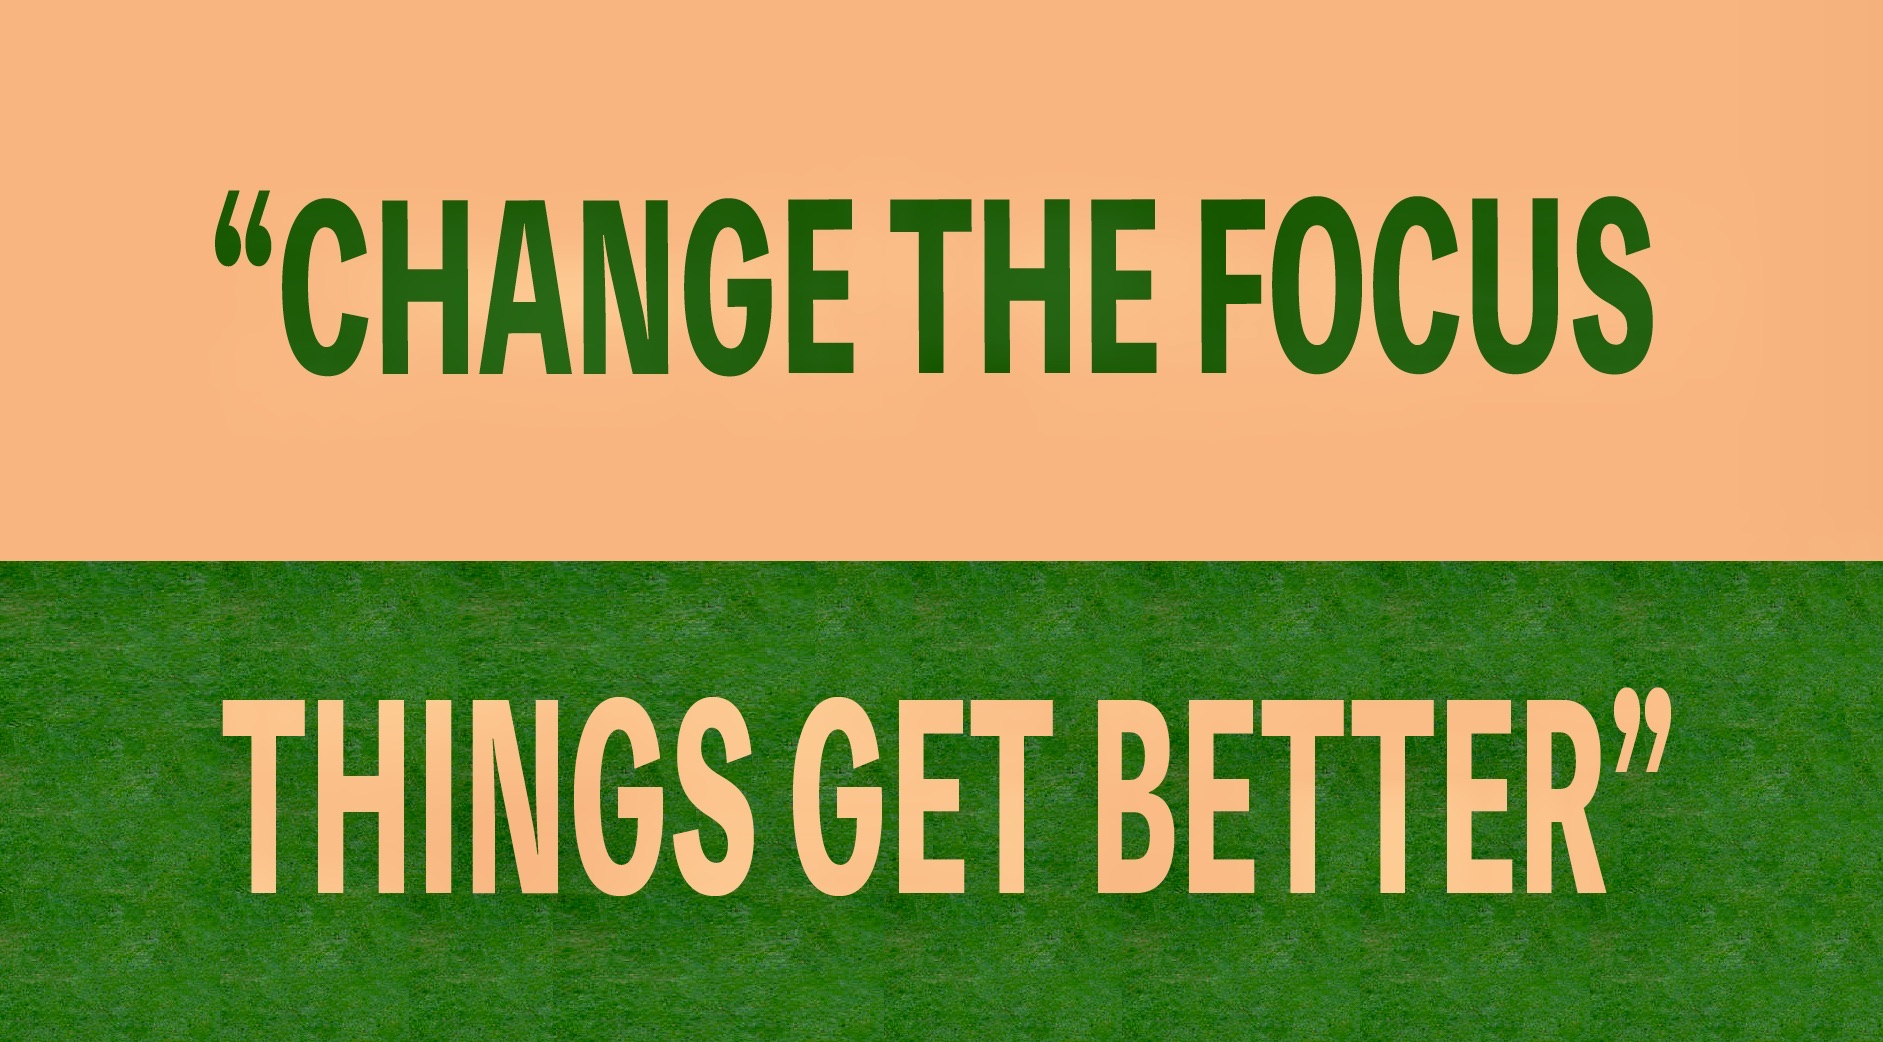 """pom poko green lyrics """"change the focus things get better"""" with peach background"""